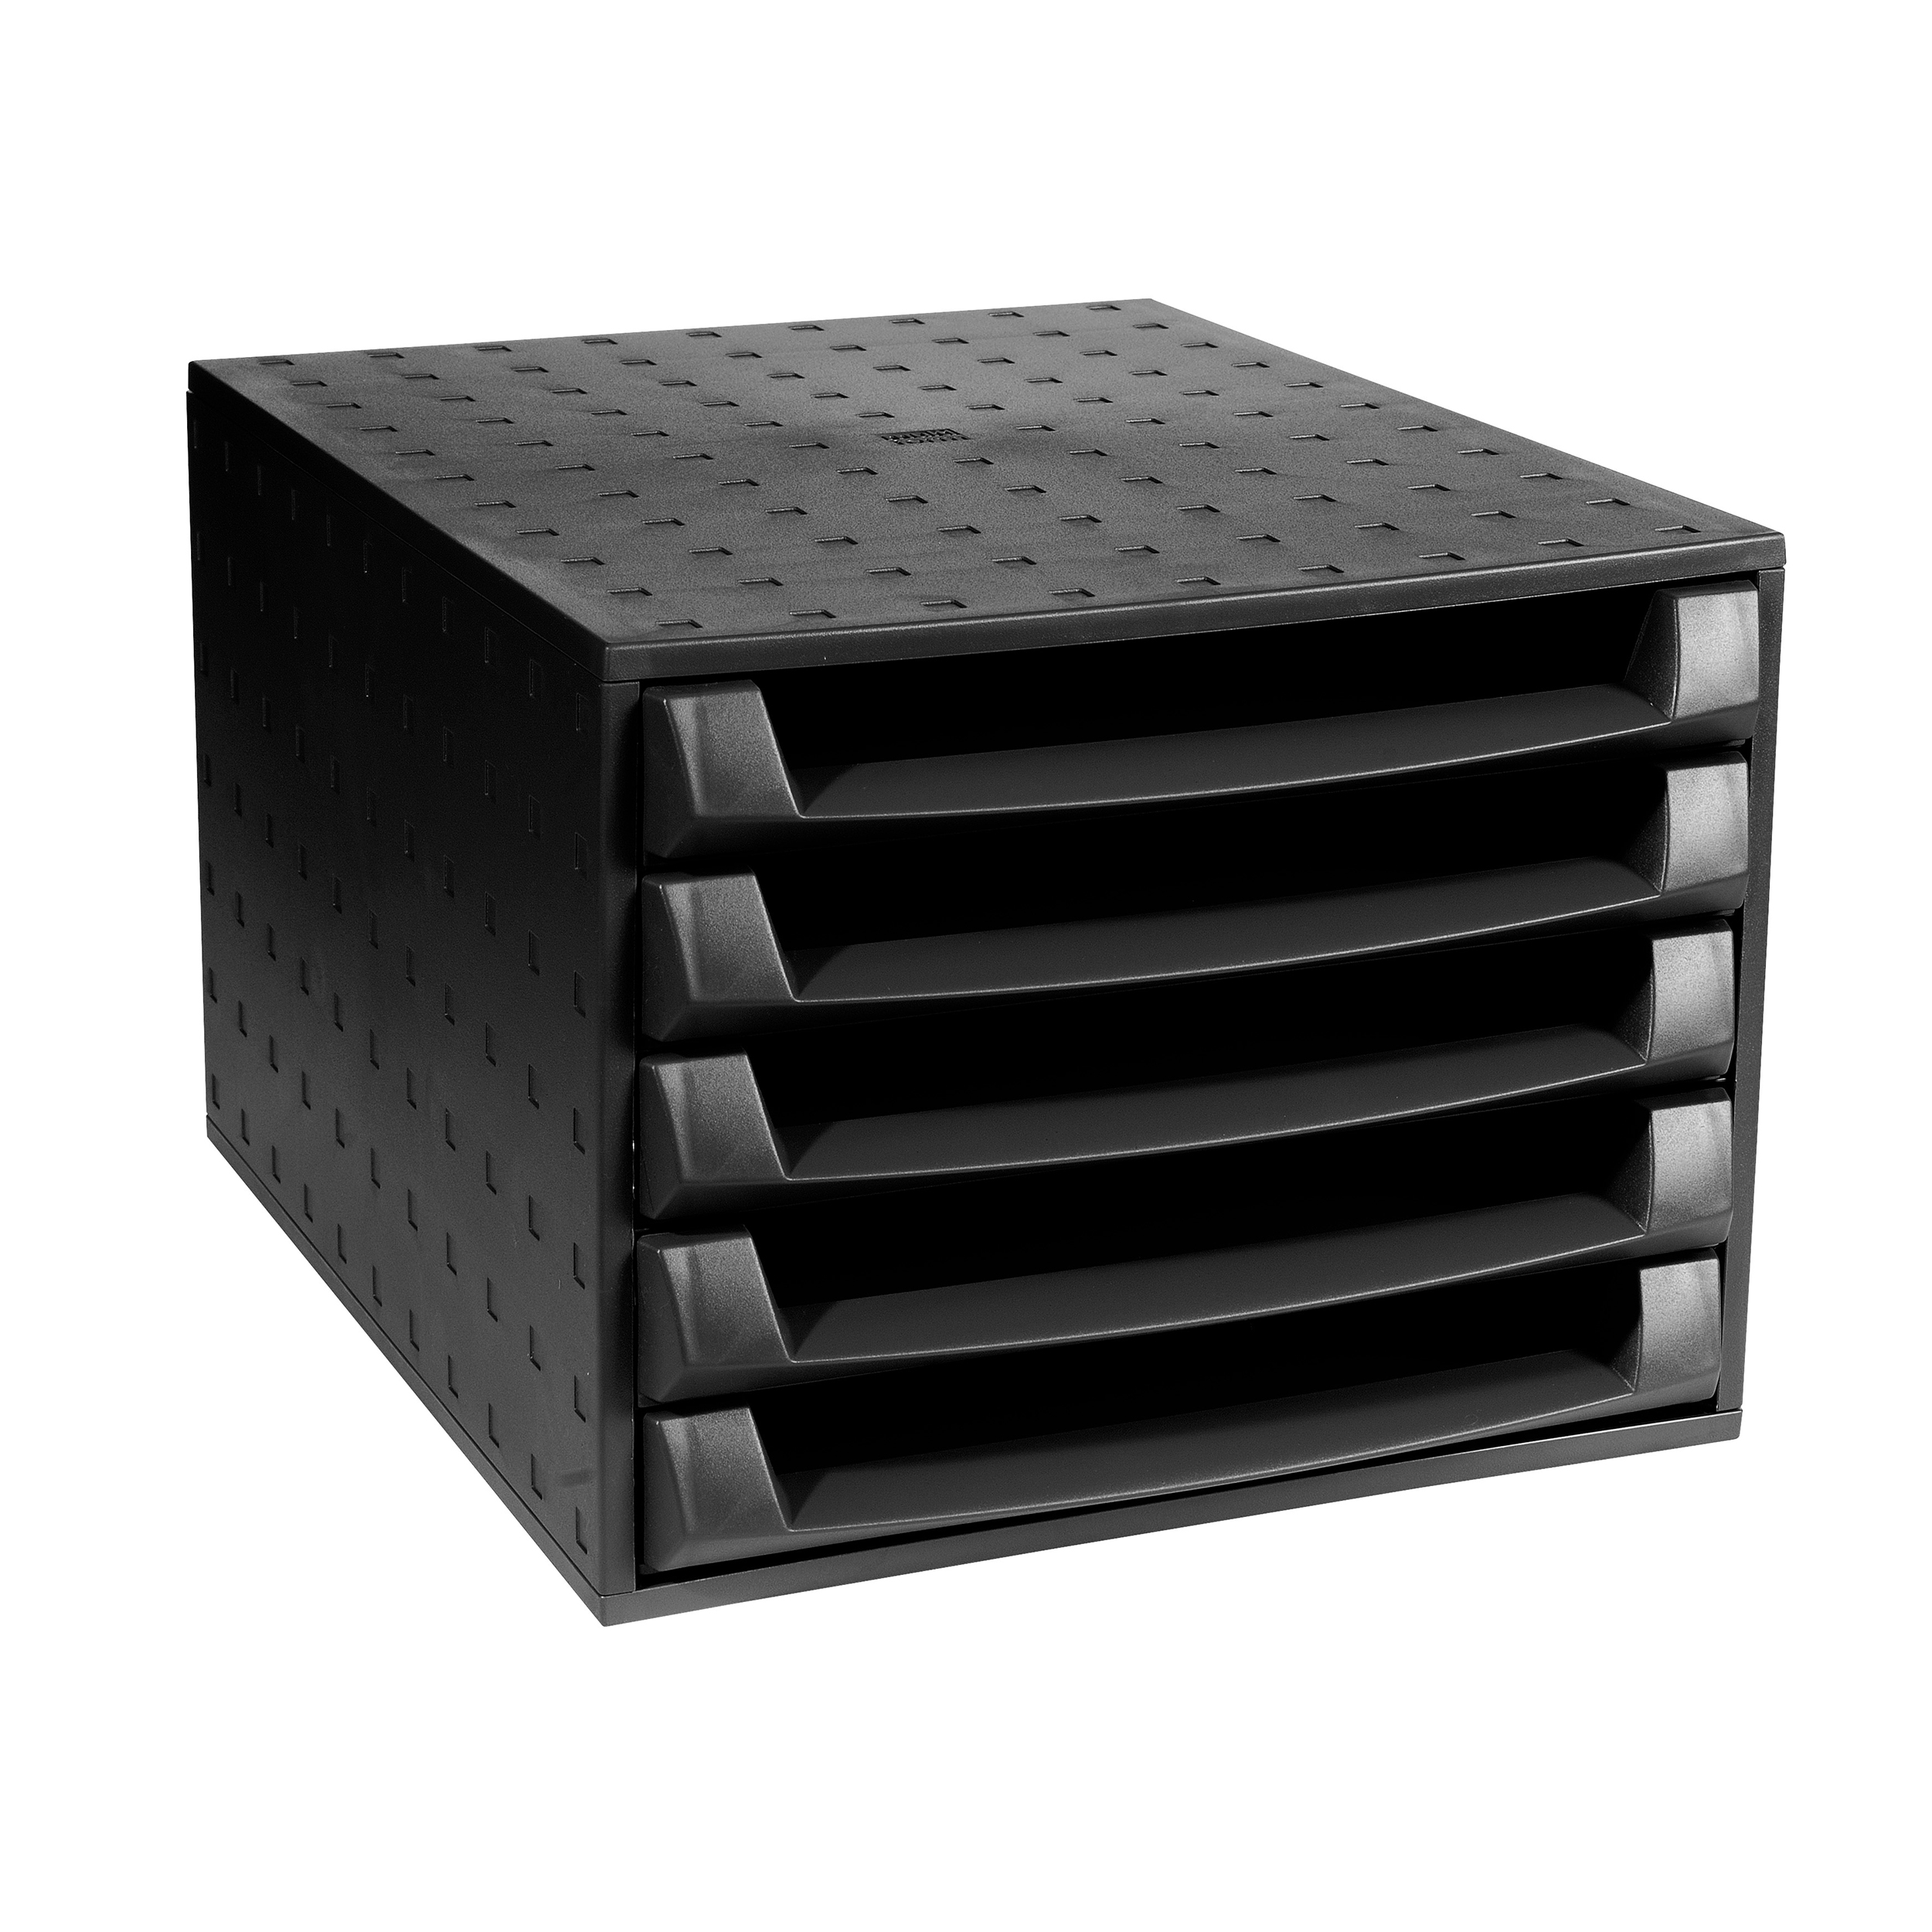 Exacompta Forever 5 Drawer Set Desktop Recycled Plastic W284xD387xH218mm Black Ref 221014D